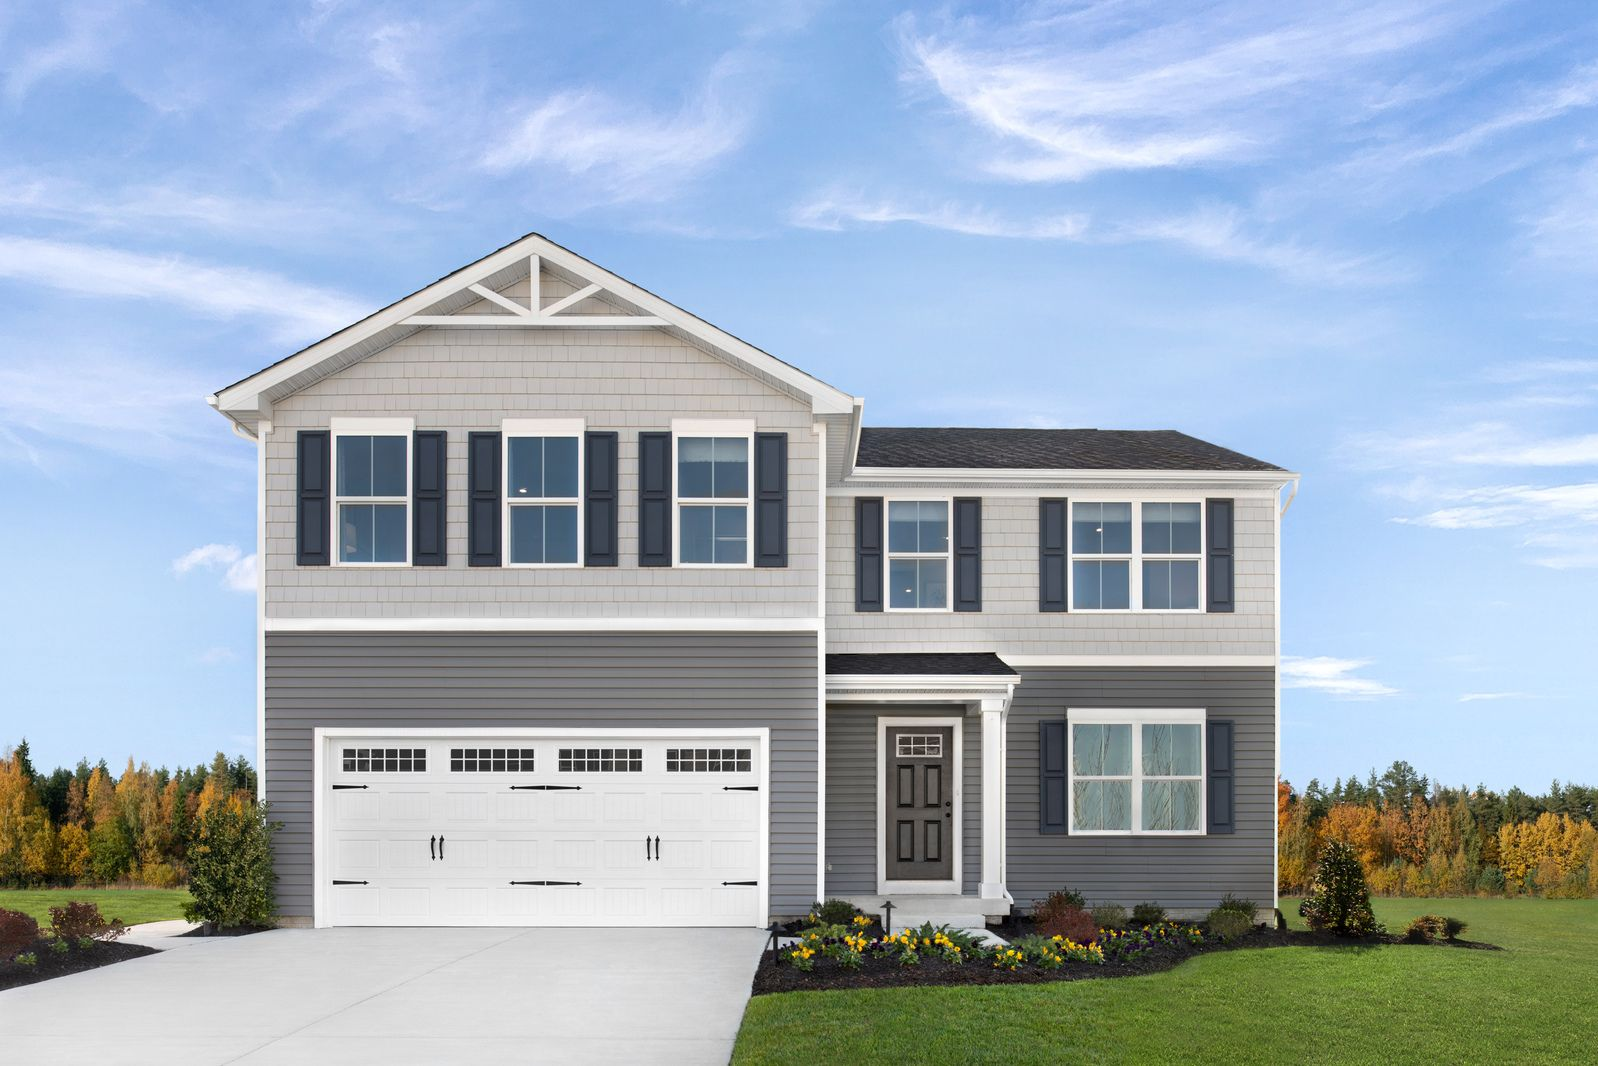 NOW SELLING! Modern Homes with Appliances Included Minutes from I-20 and I-26:With Lexington 1 Schools, offering 0% down financing options.Schedule a visit today!